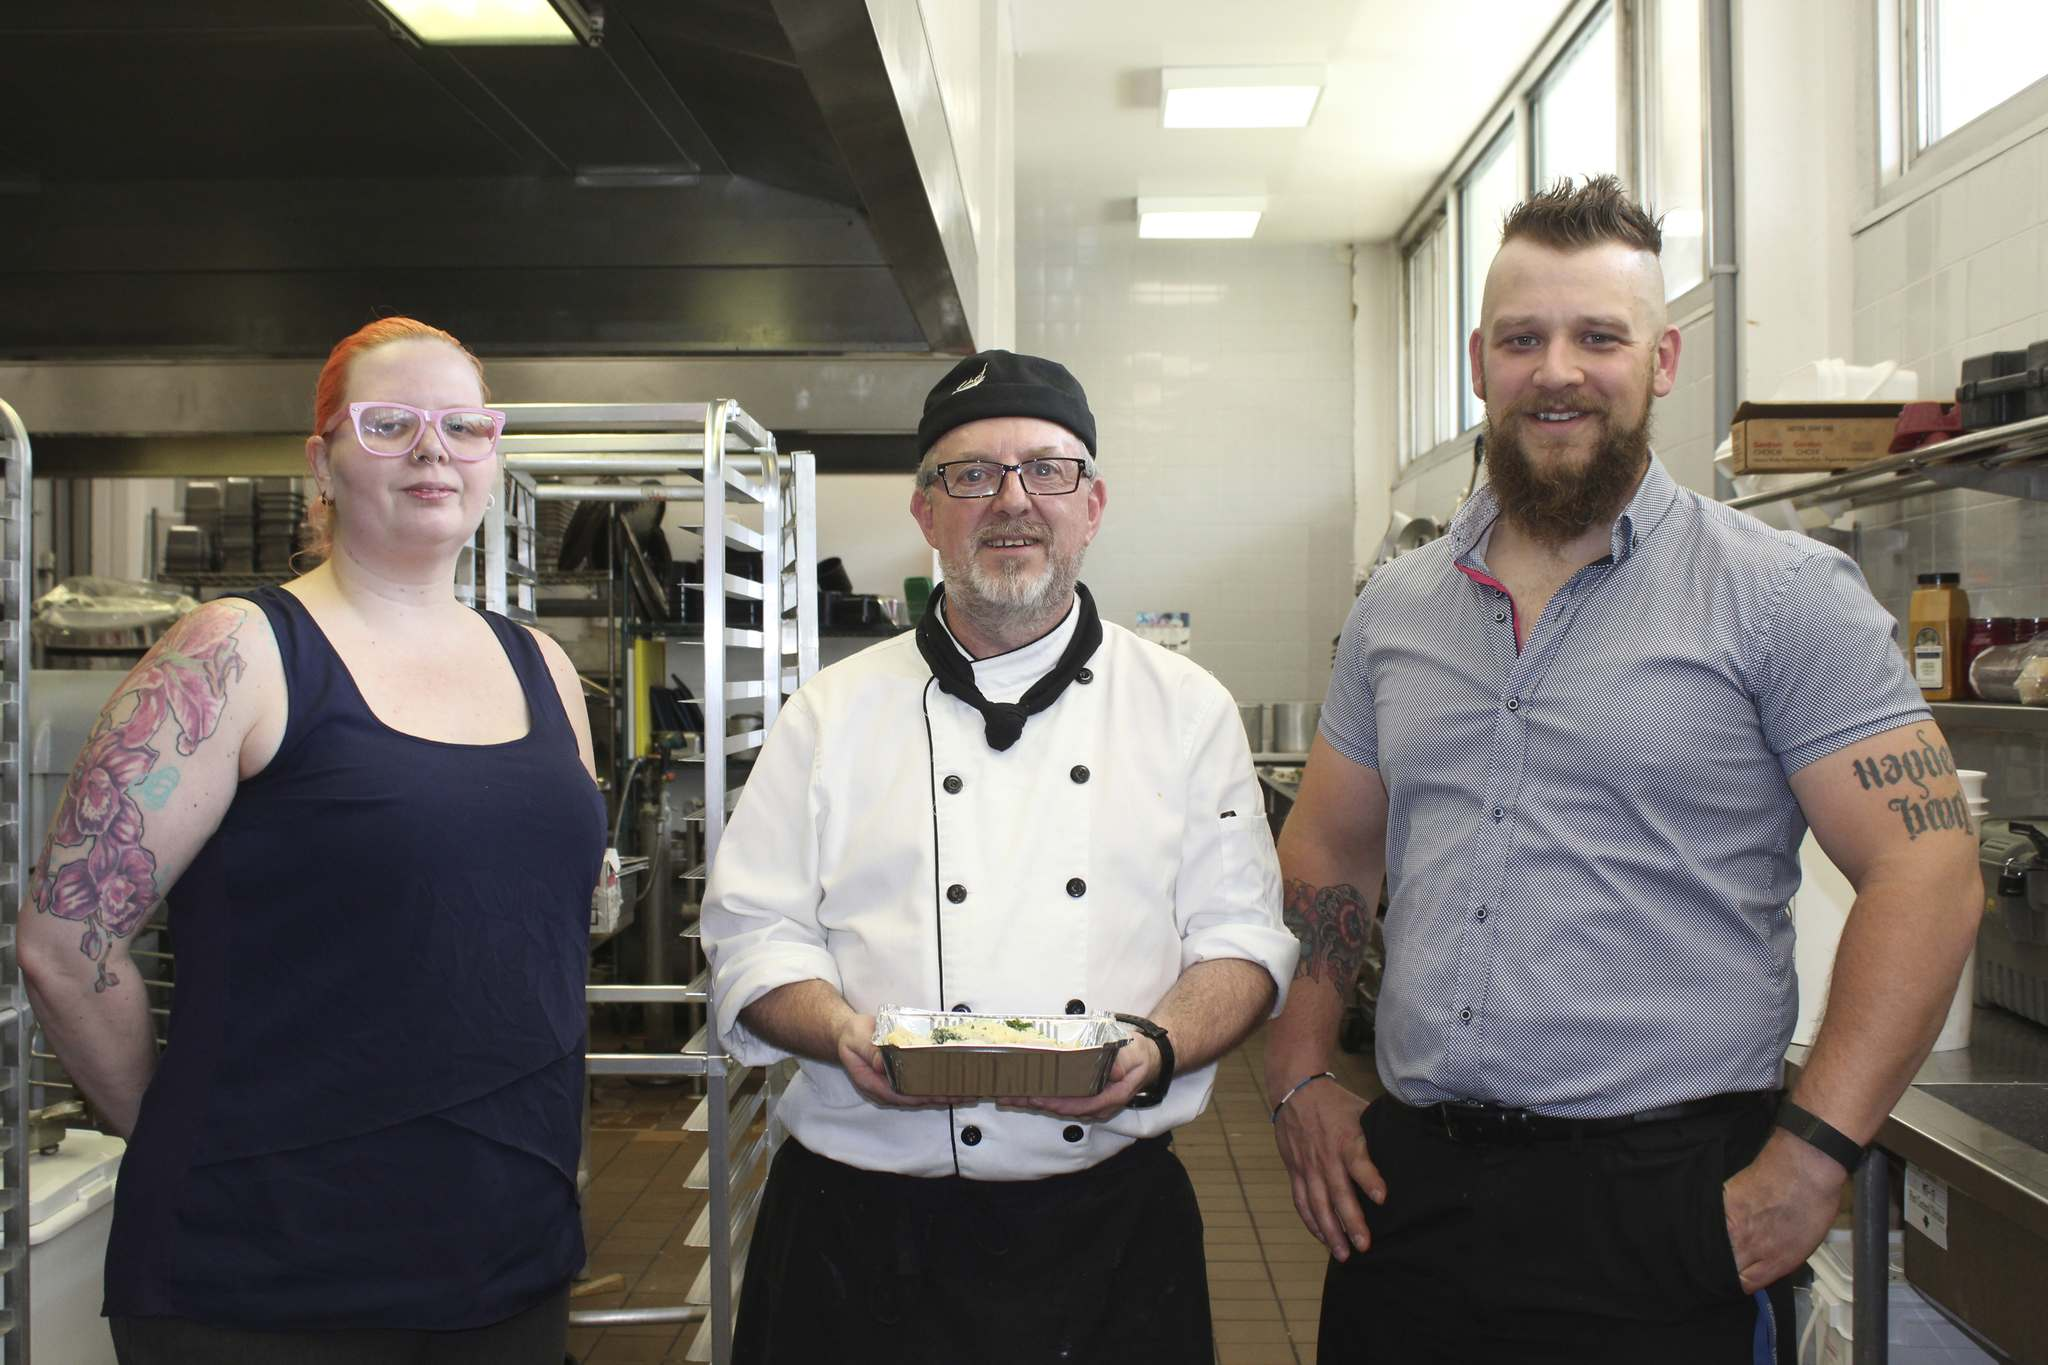 Brandon University culinary assistant Trish Chalanchuk, lead cook Paul Mount and food services manager Nicholas Namespetra are seen at the Brandon University kitchen last month. (File)</p></p>